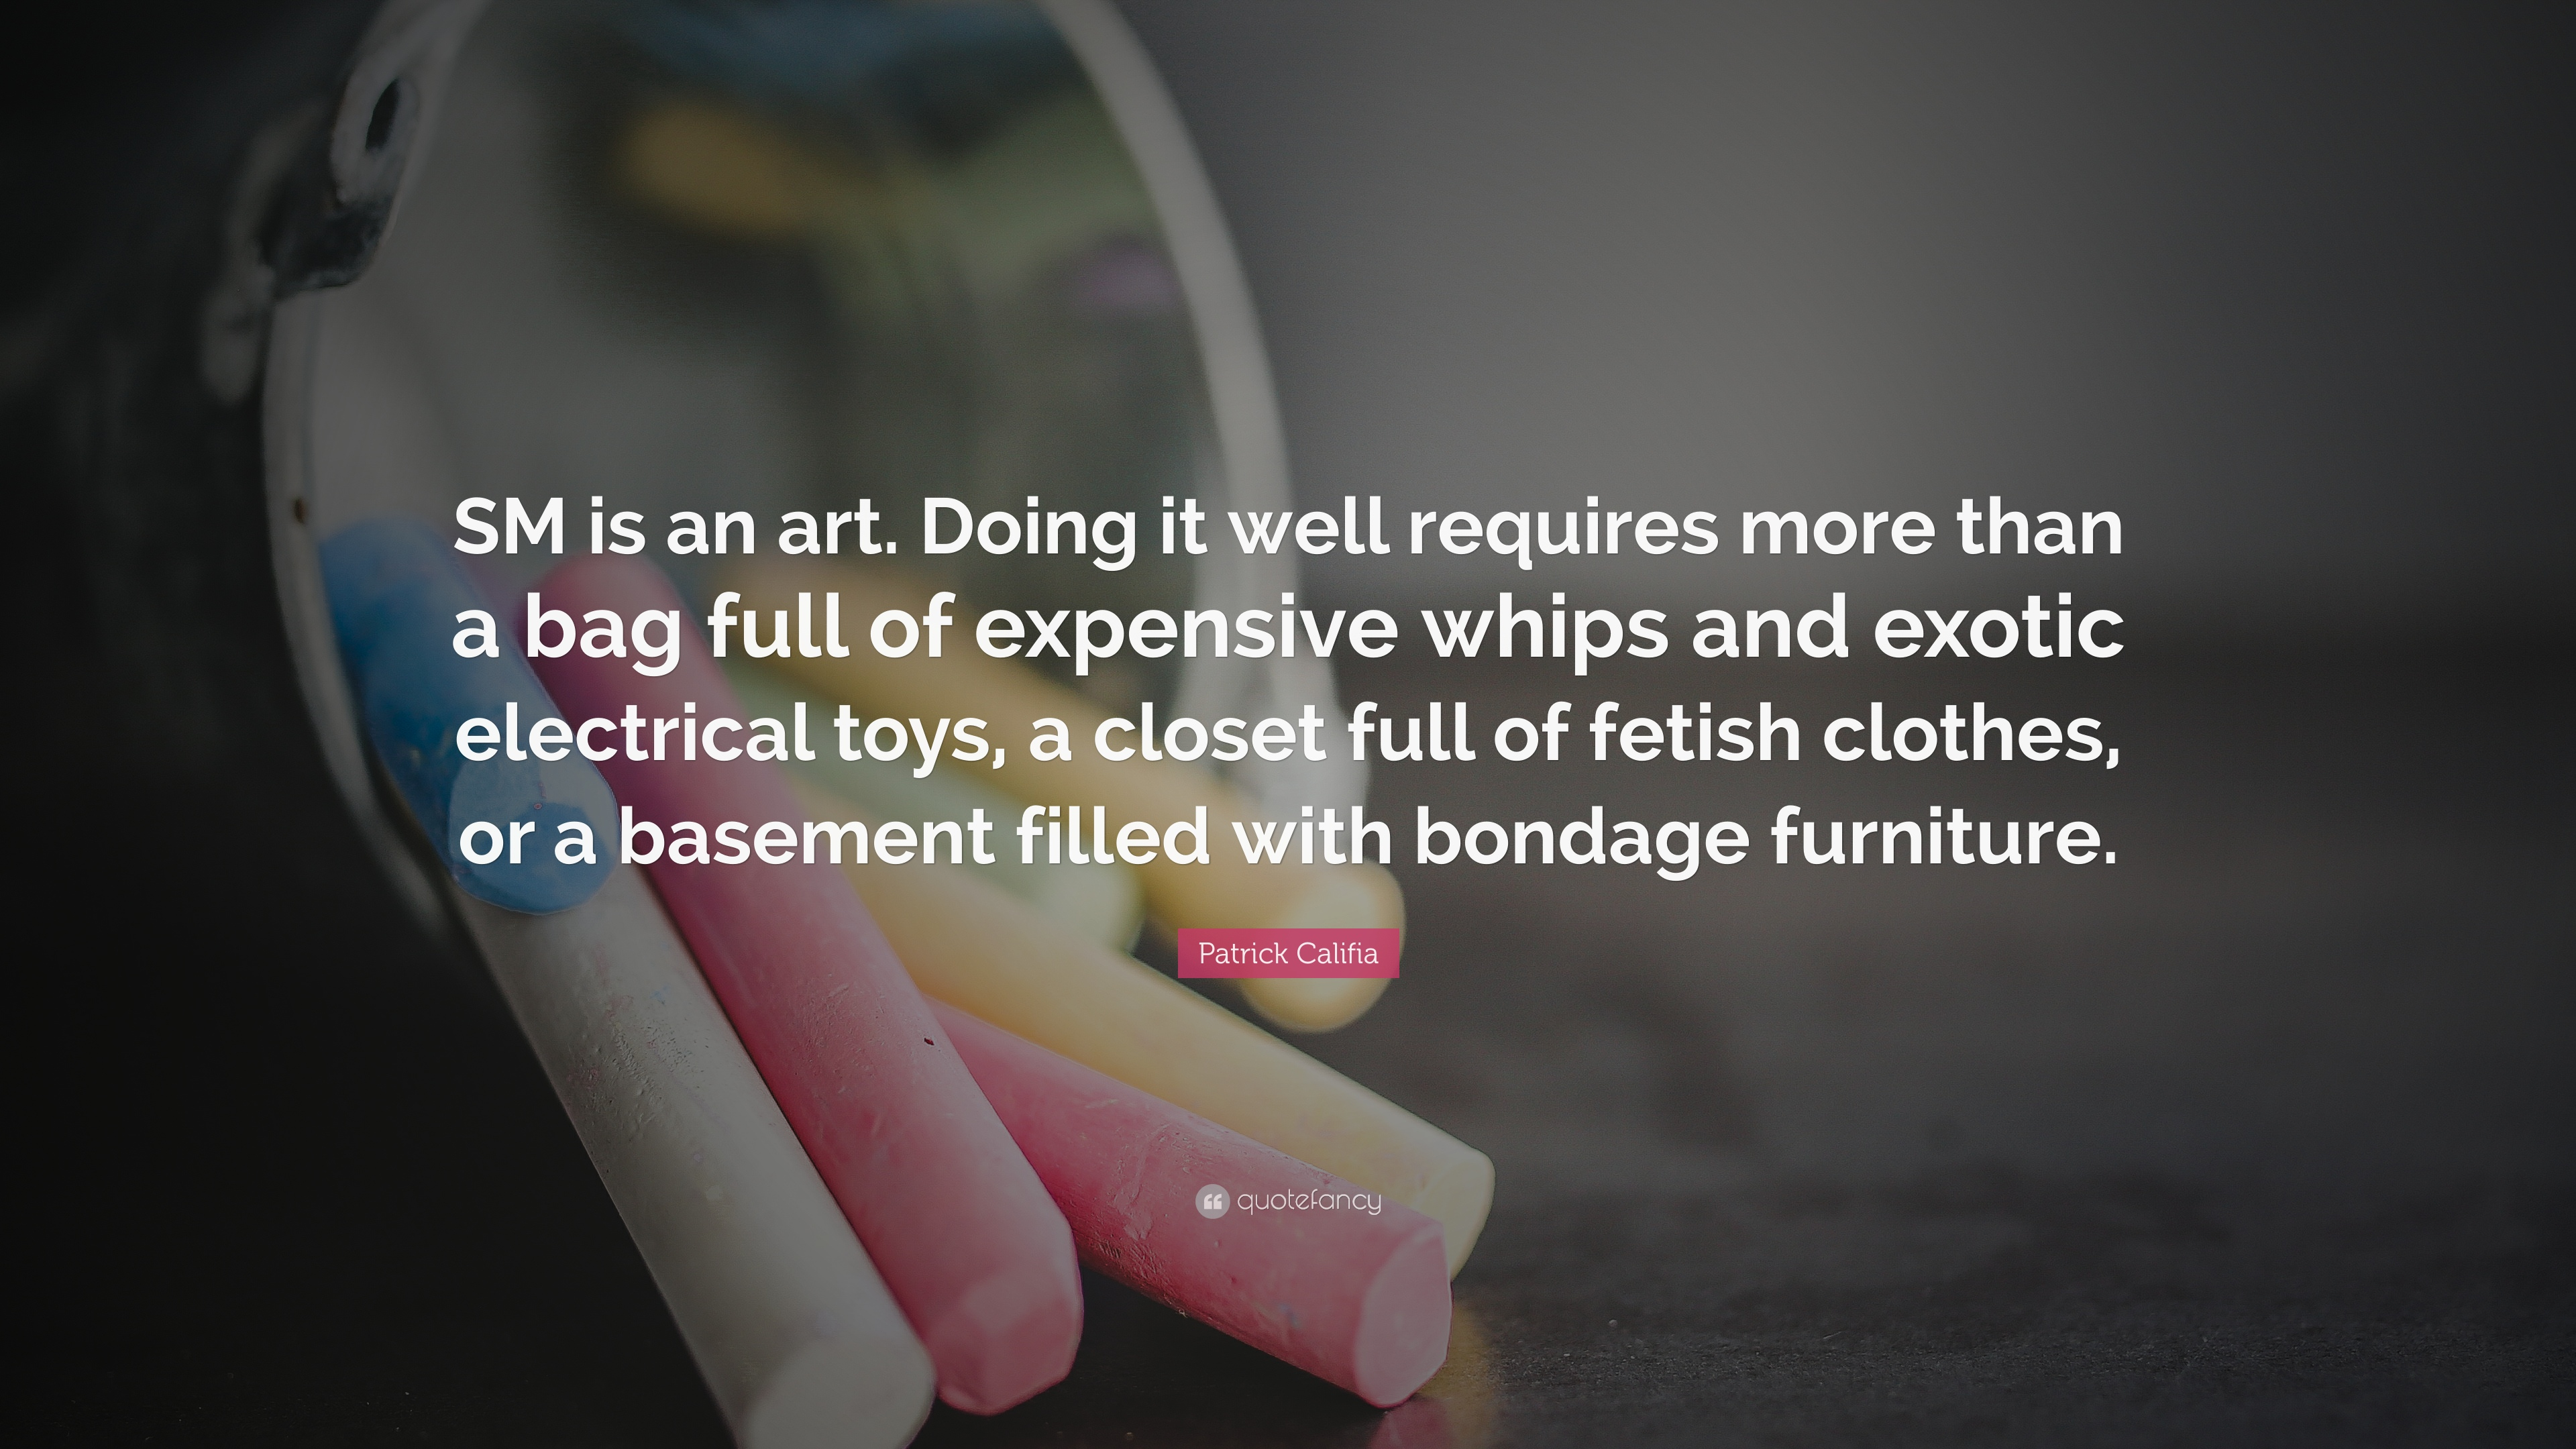 Not happens)))) fetish clothes and toys agree